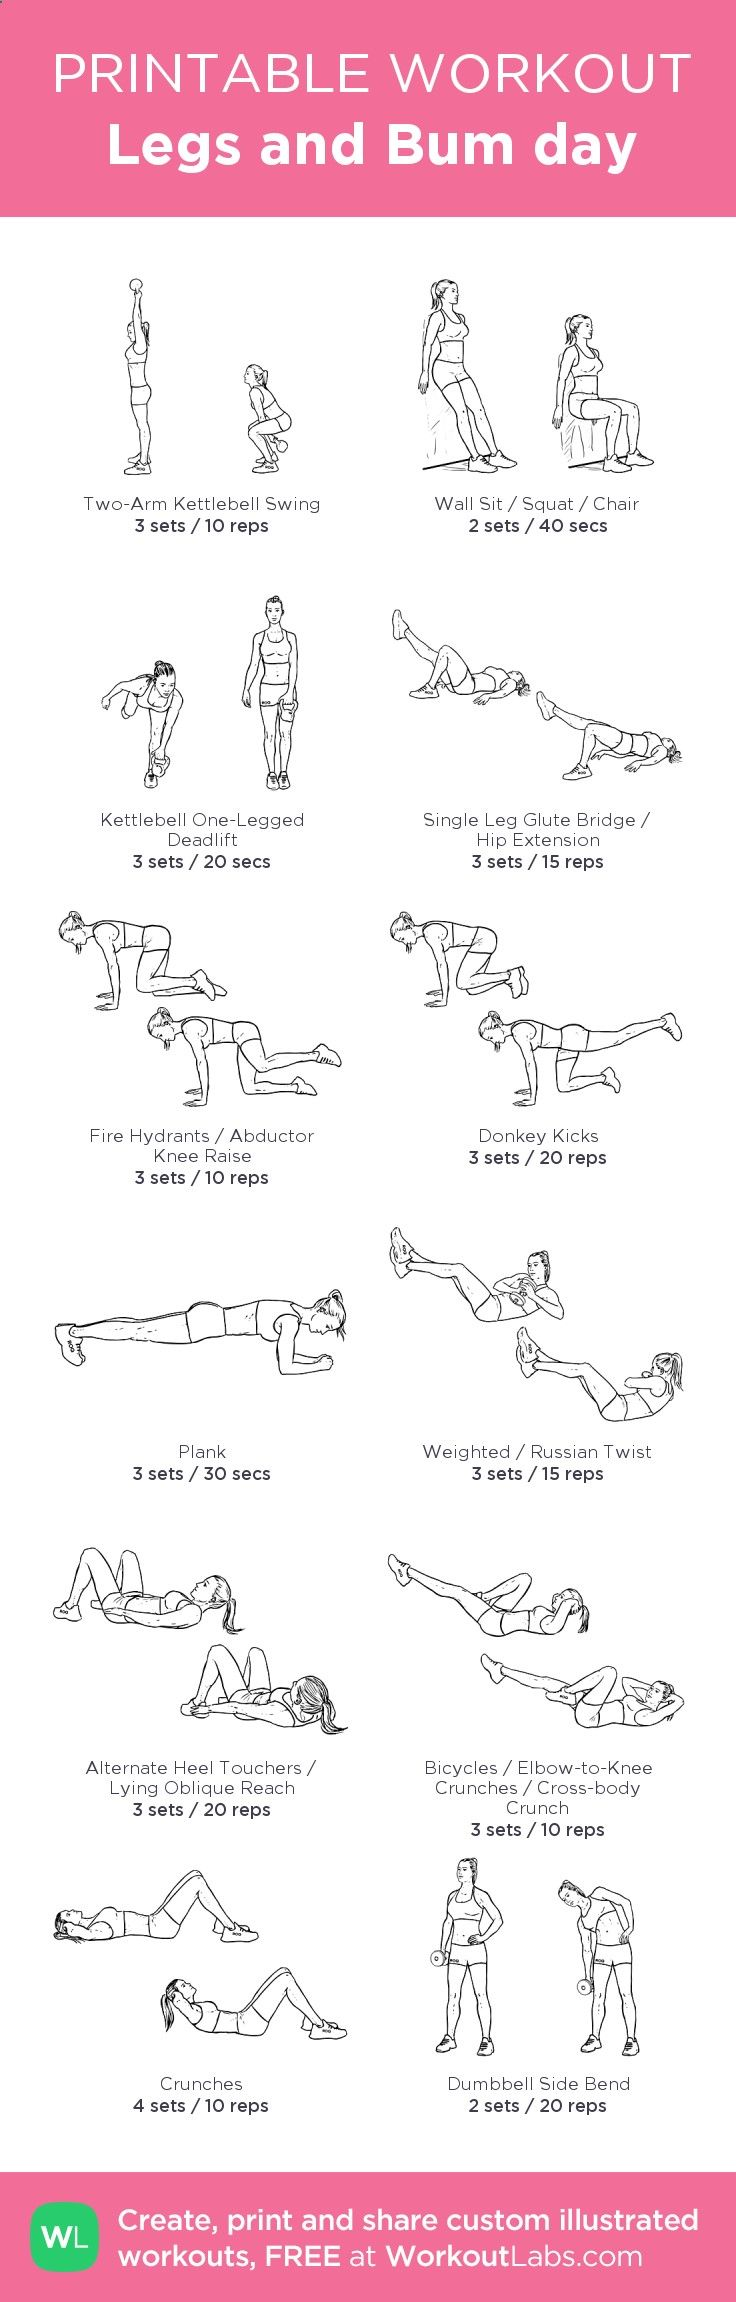 The Hidden Survival Muscle - Legs and Bum day:my visual workout created at WorkoutLabs.com • Click through to customize and download as a FREE PDF! #customworkout The Hidden Survival Muscle In Your Body Missed By Modern Physicians That Keep Millions Of Men And Women Defeated By Pain, Frustrated With Belly Fat, And Struggling To Feel Energized Every Day